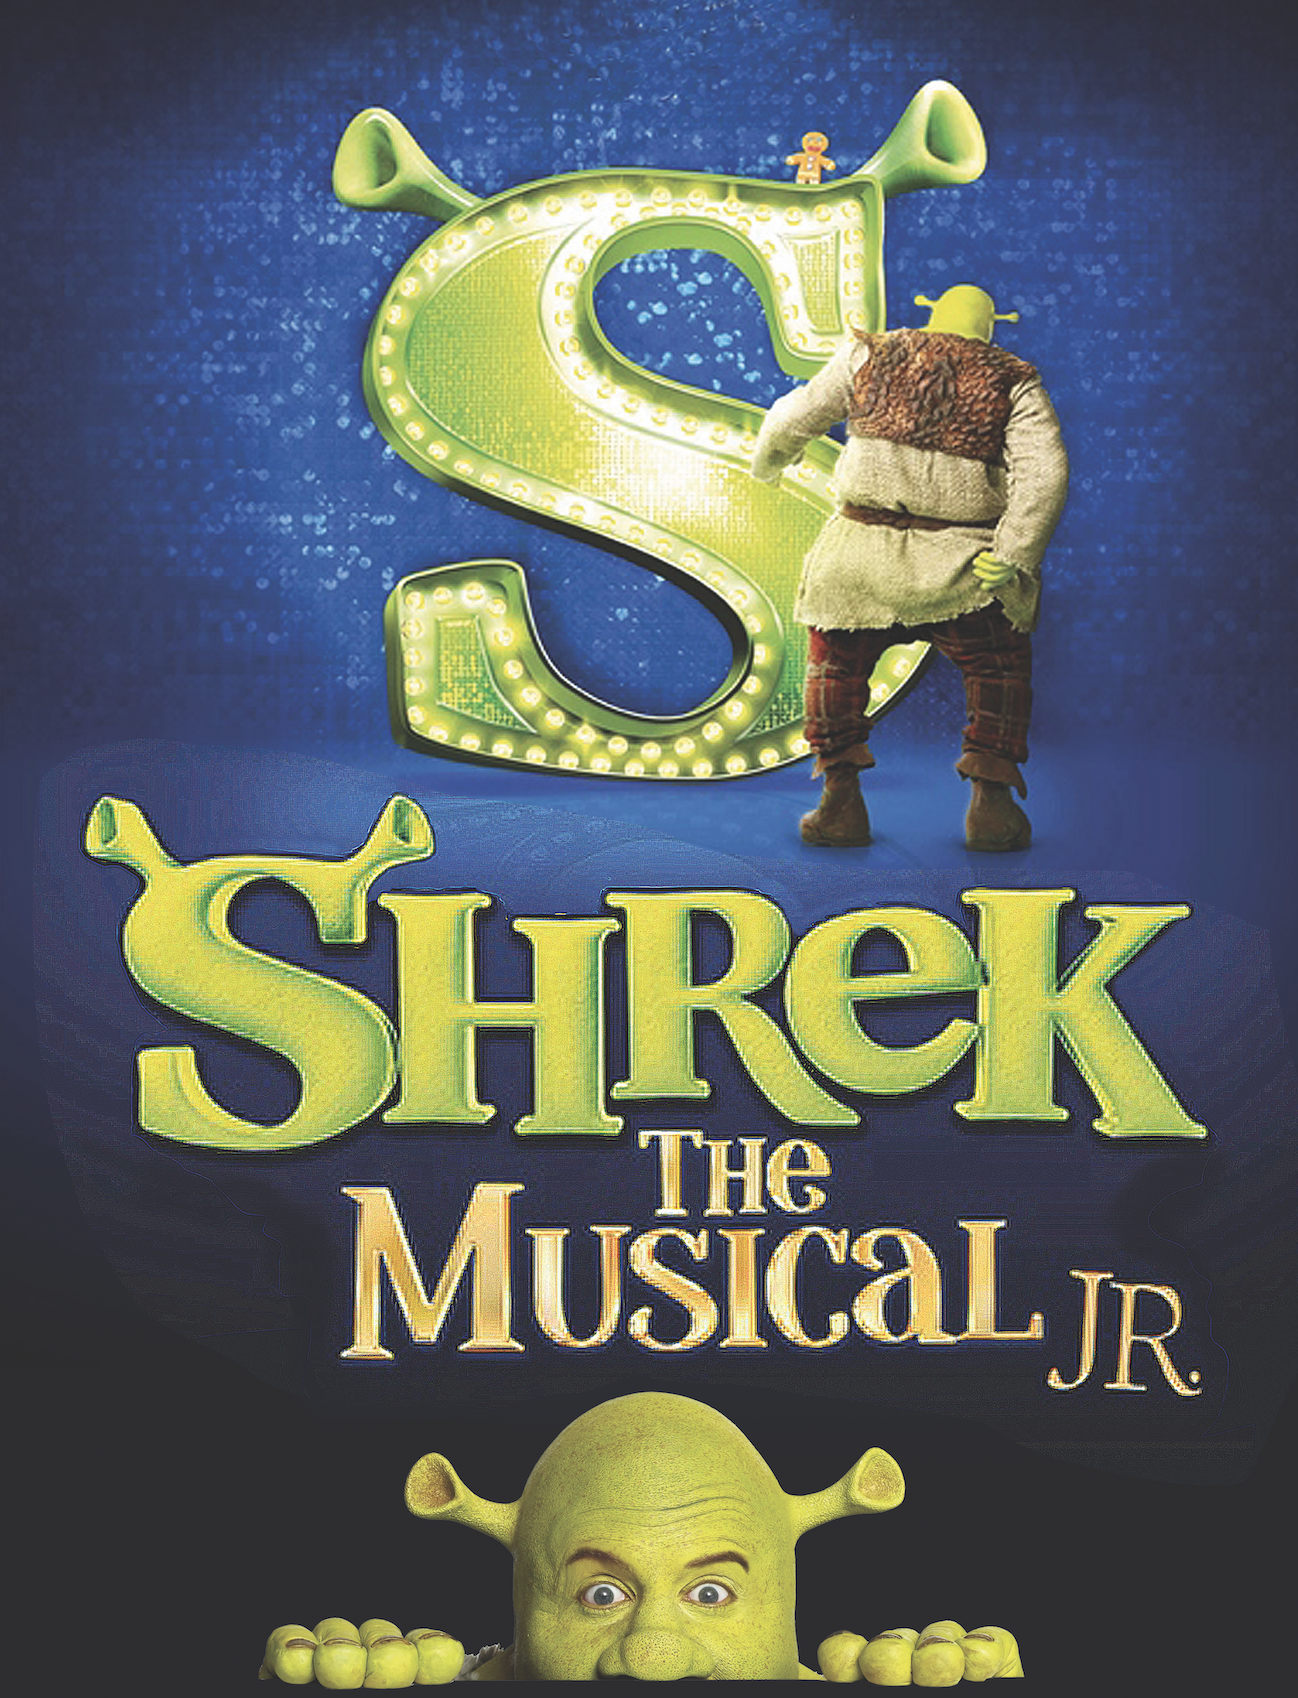 Waterfront Playhouse Youth Theatre Program Presents: Shrek, The Musical Jr.